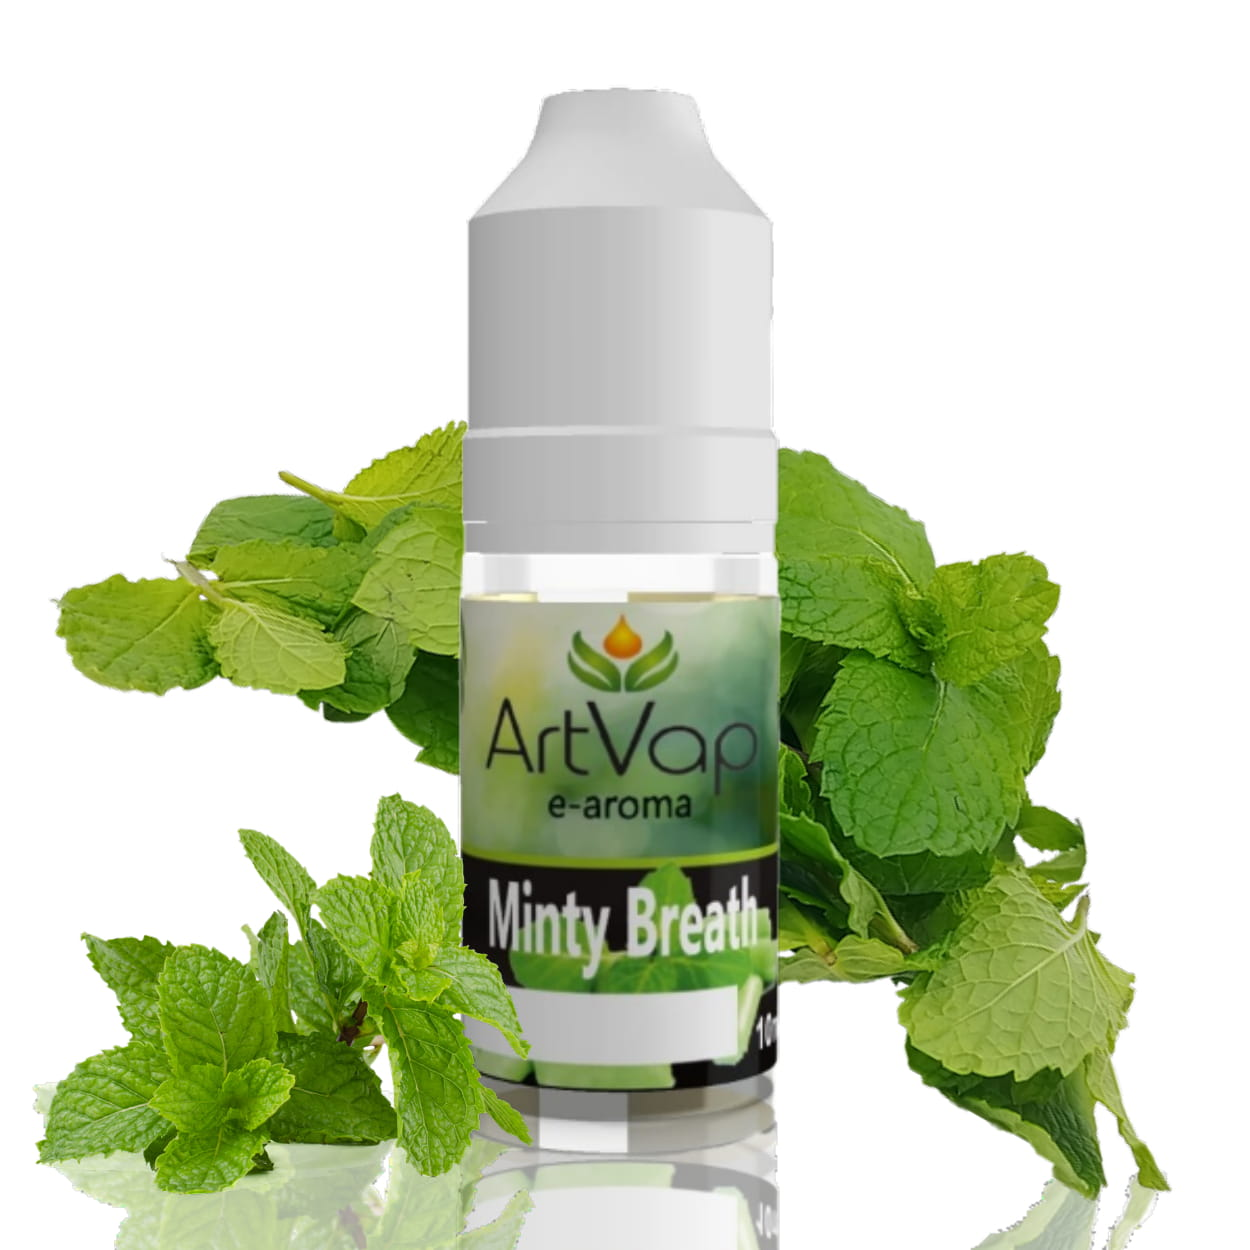 10 ml ArtVap - Minty Breath